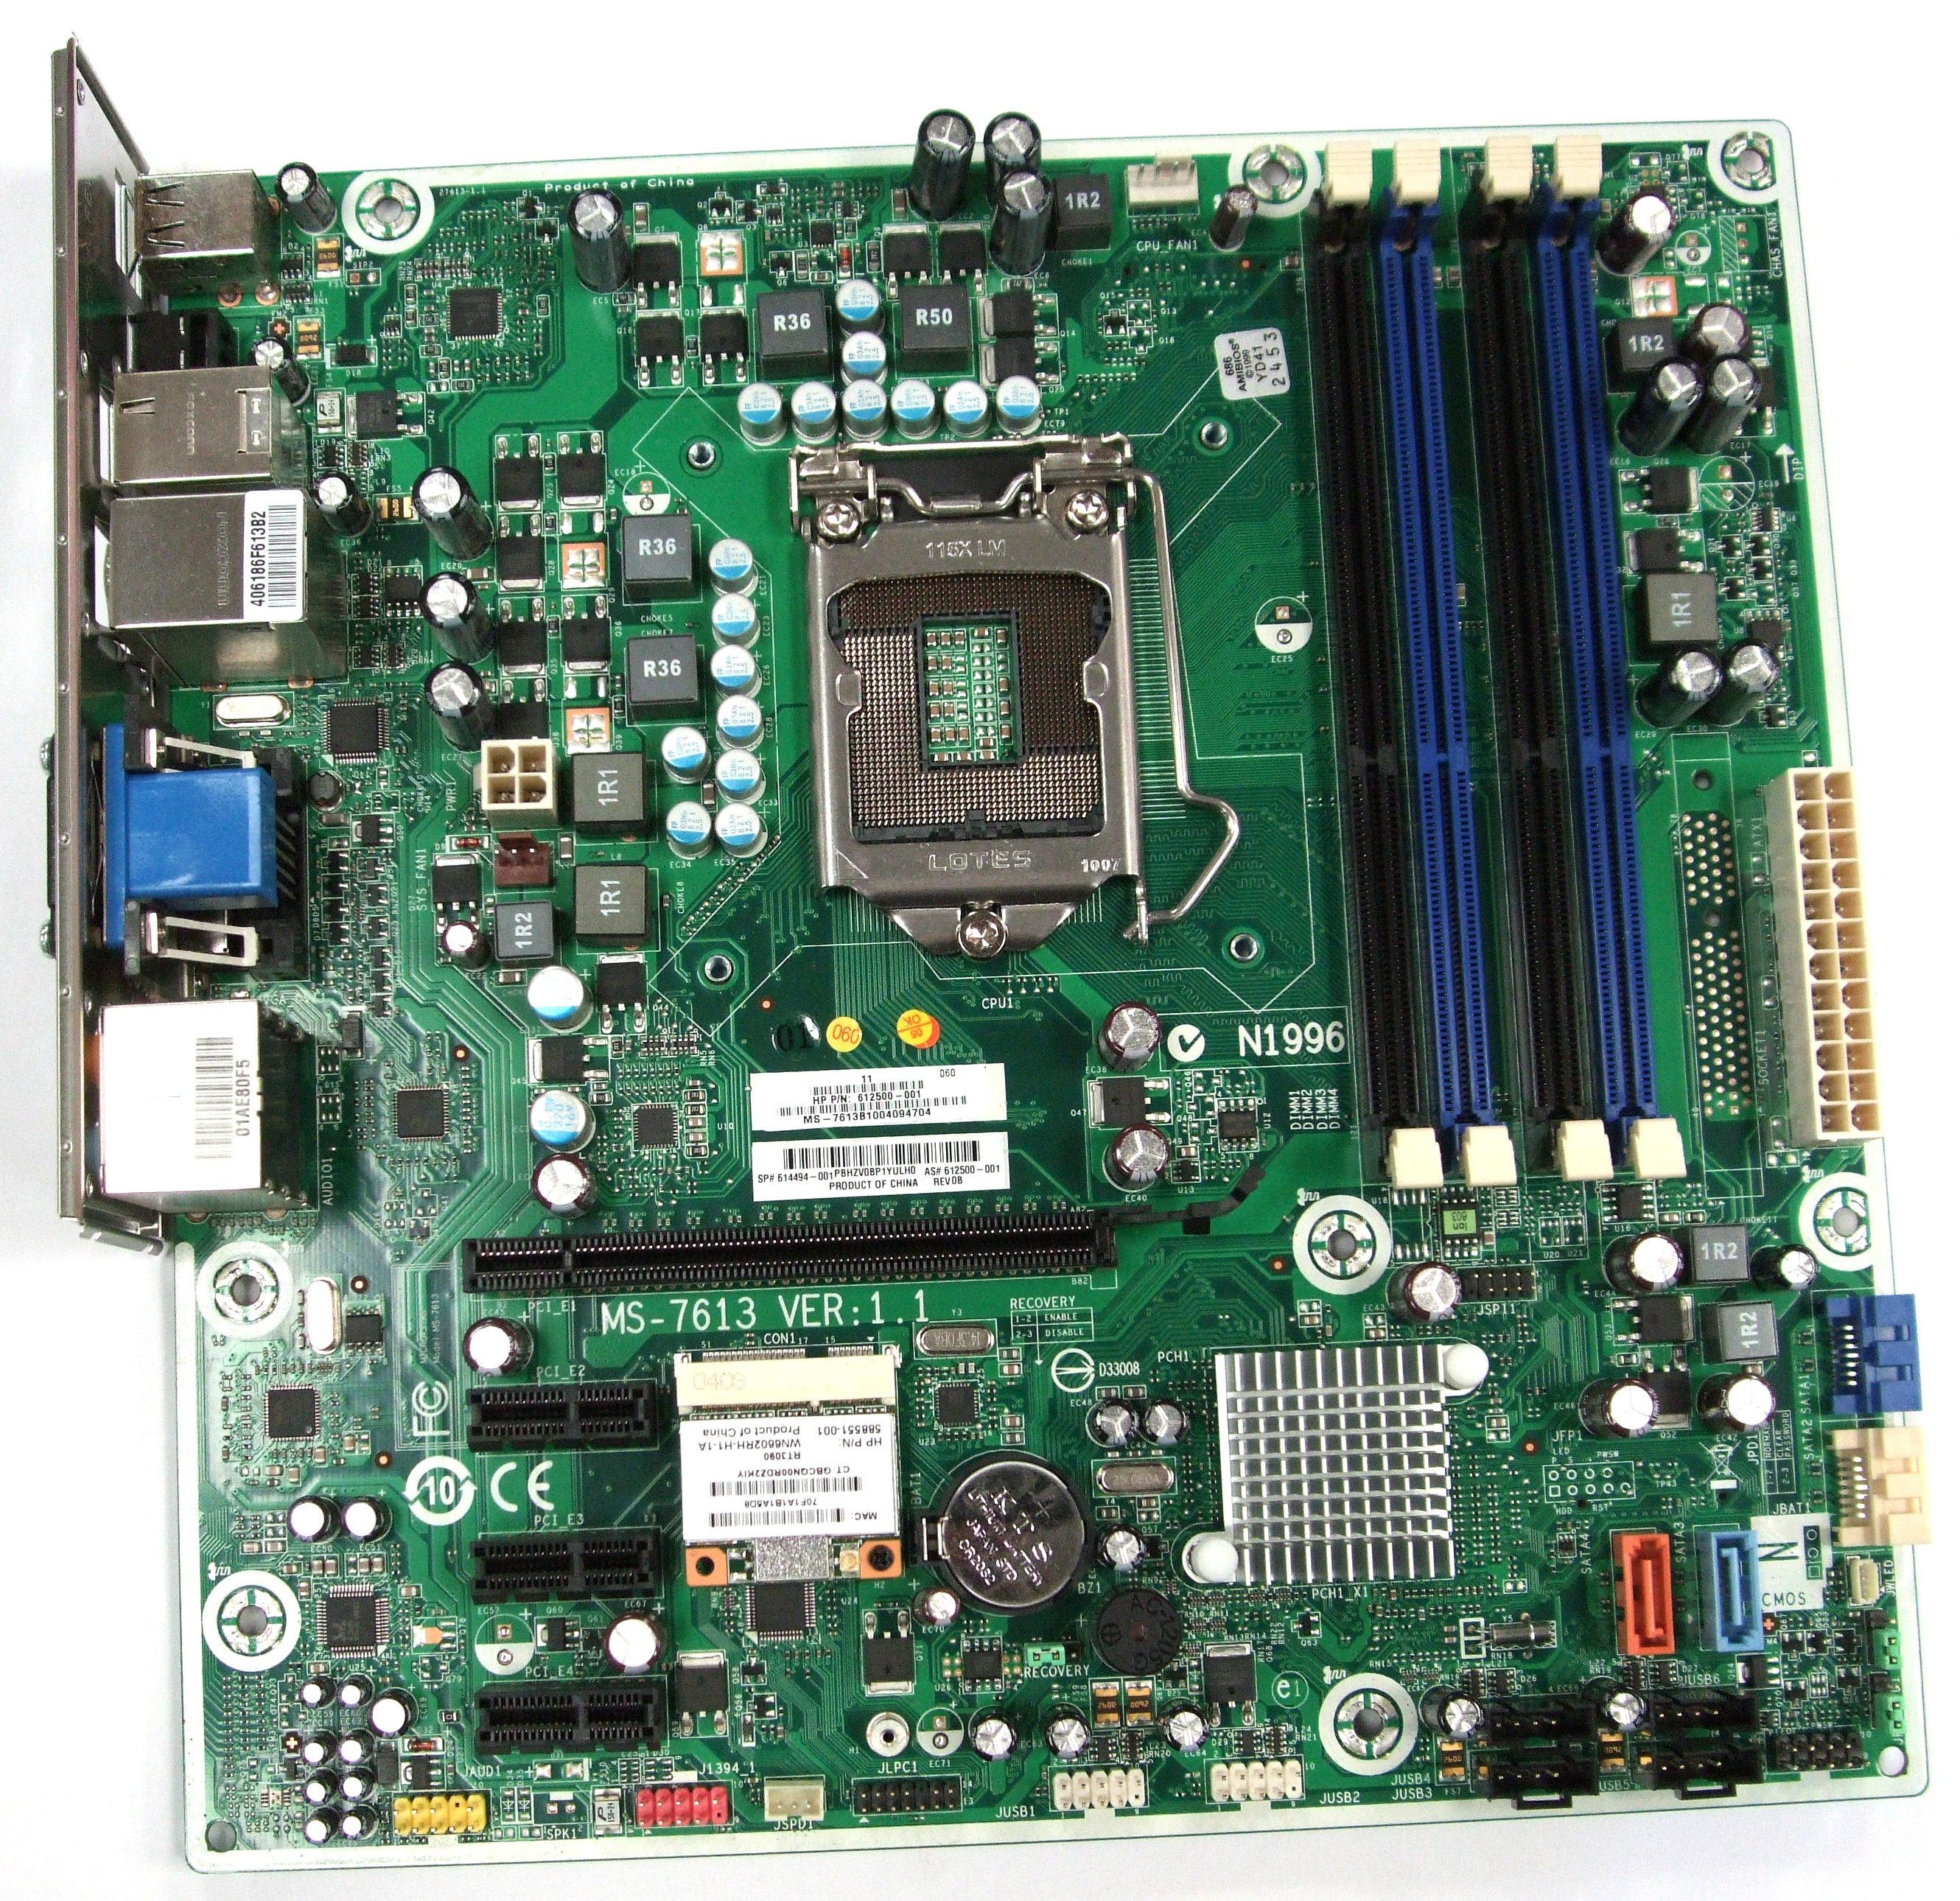 MS-7613 HP Compaq Elite Intel IONA-GL8E Motherboard - 612500-001/614494-001 Enlarged Preview